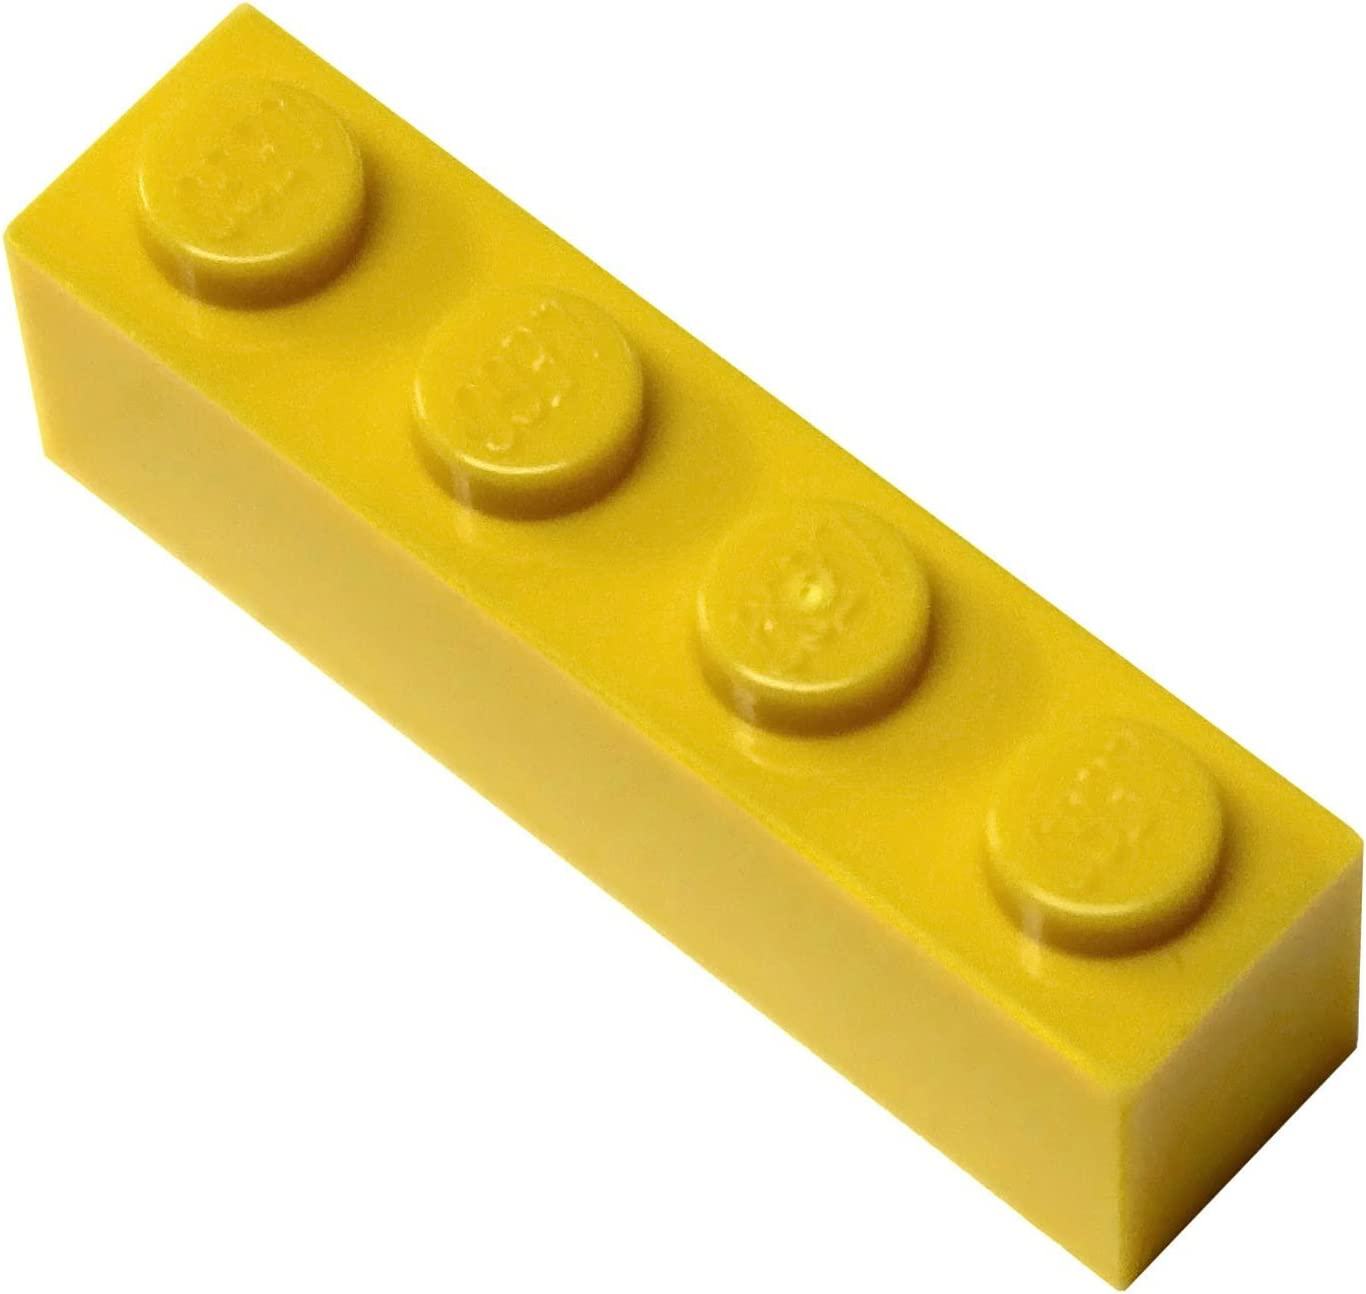 LEGO 1X3 BRICKS LOT OF 100 FREE SHIPPING! BRAND NEW RED